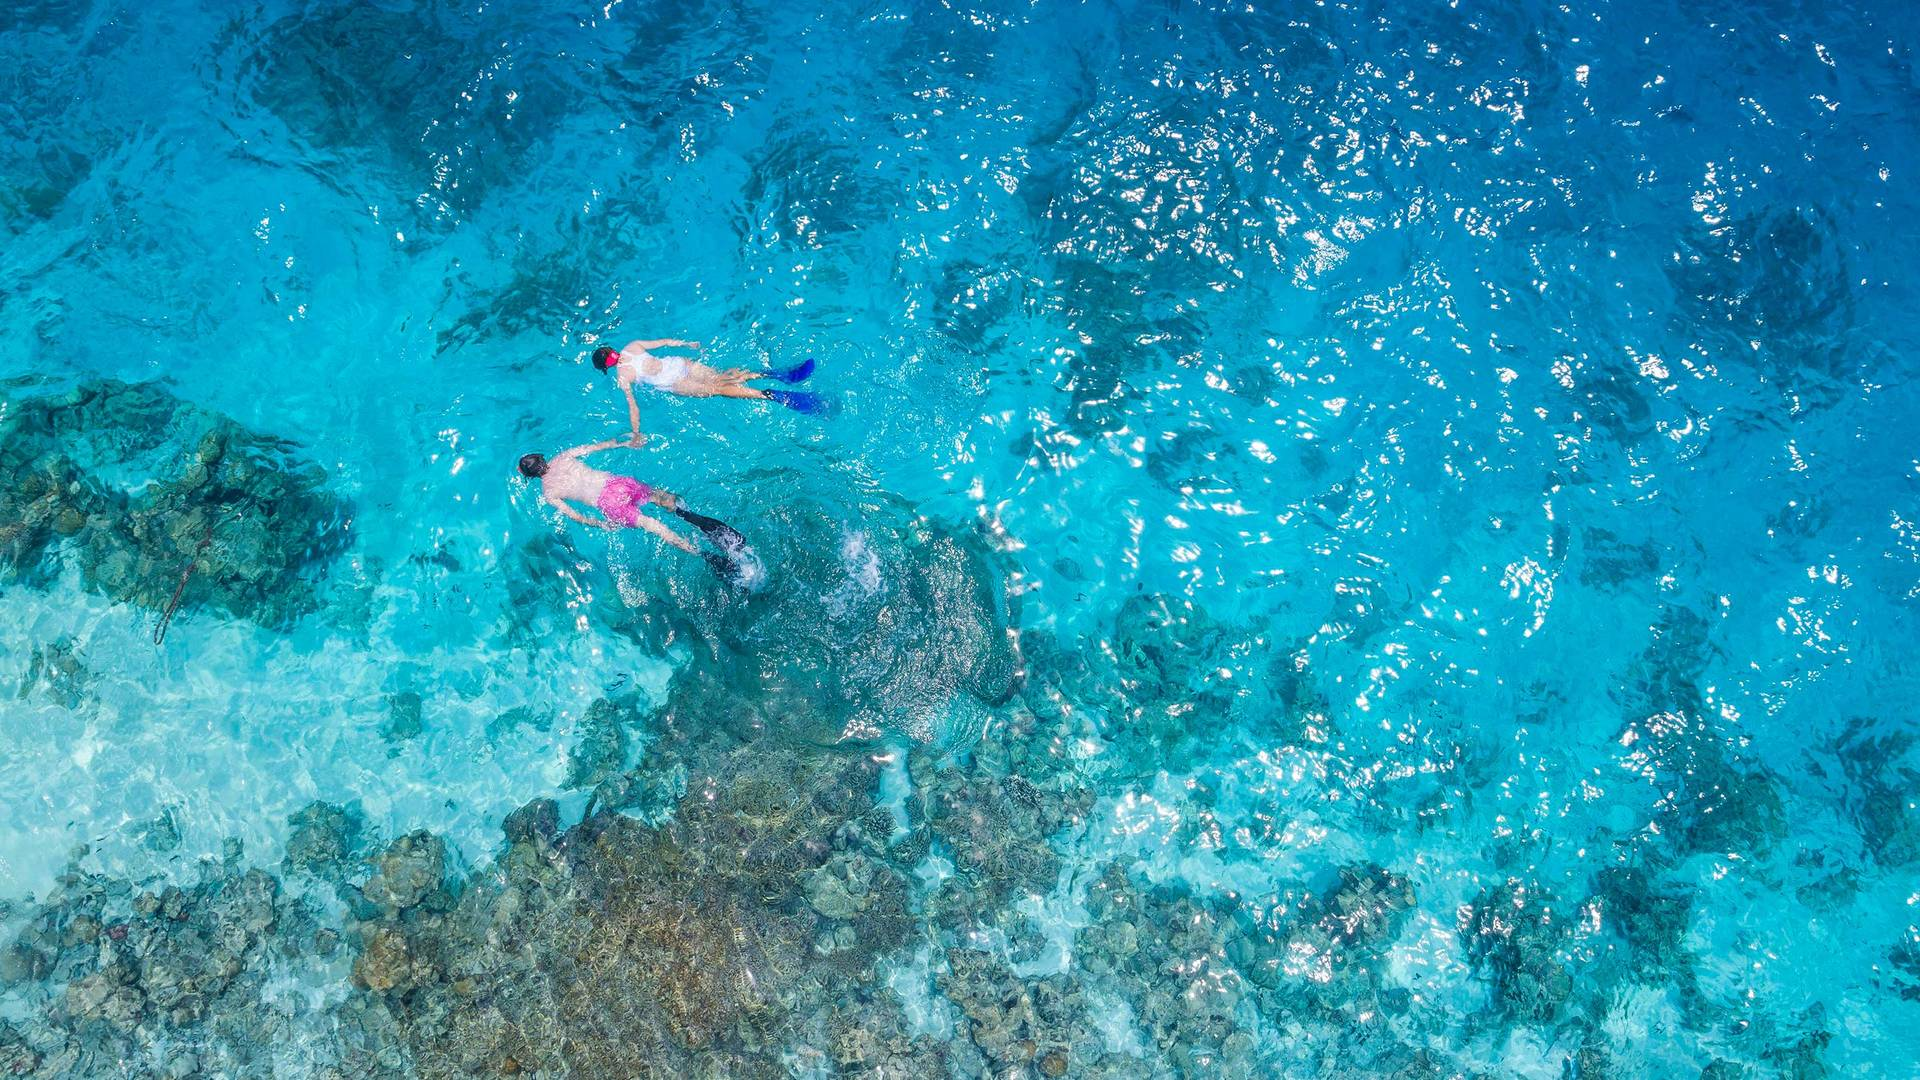 Couple snorkeling in the ocean